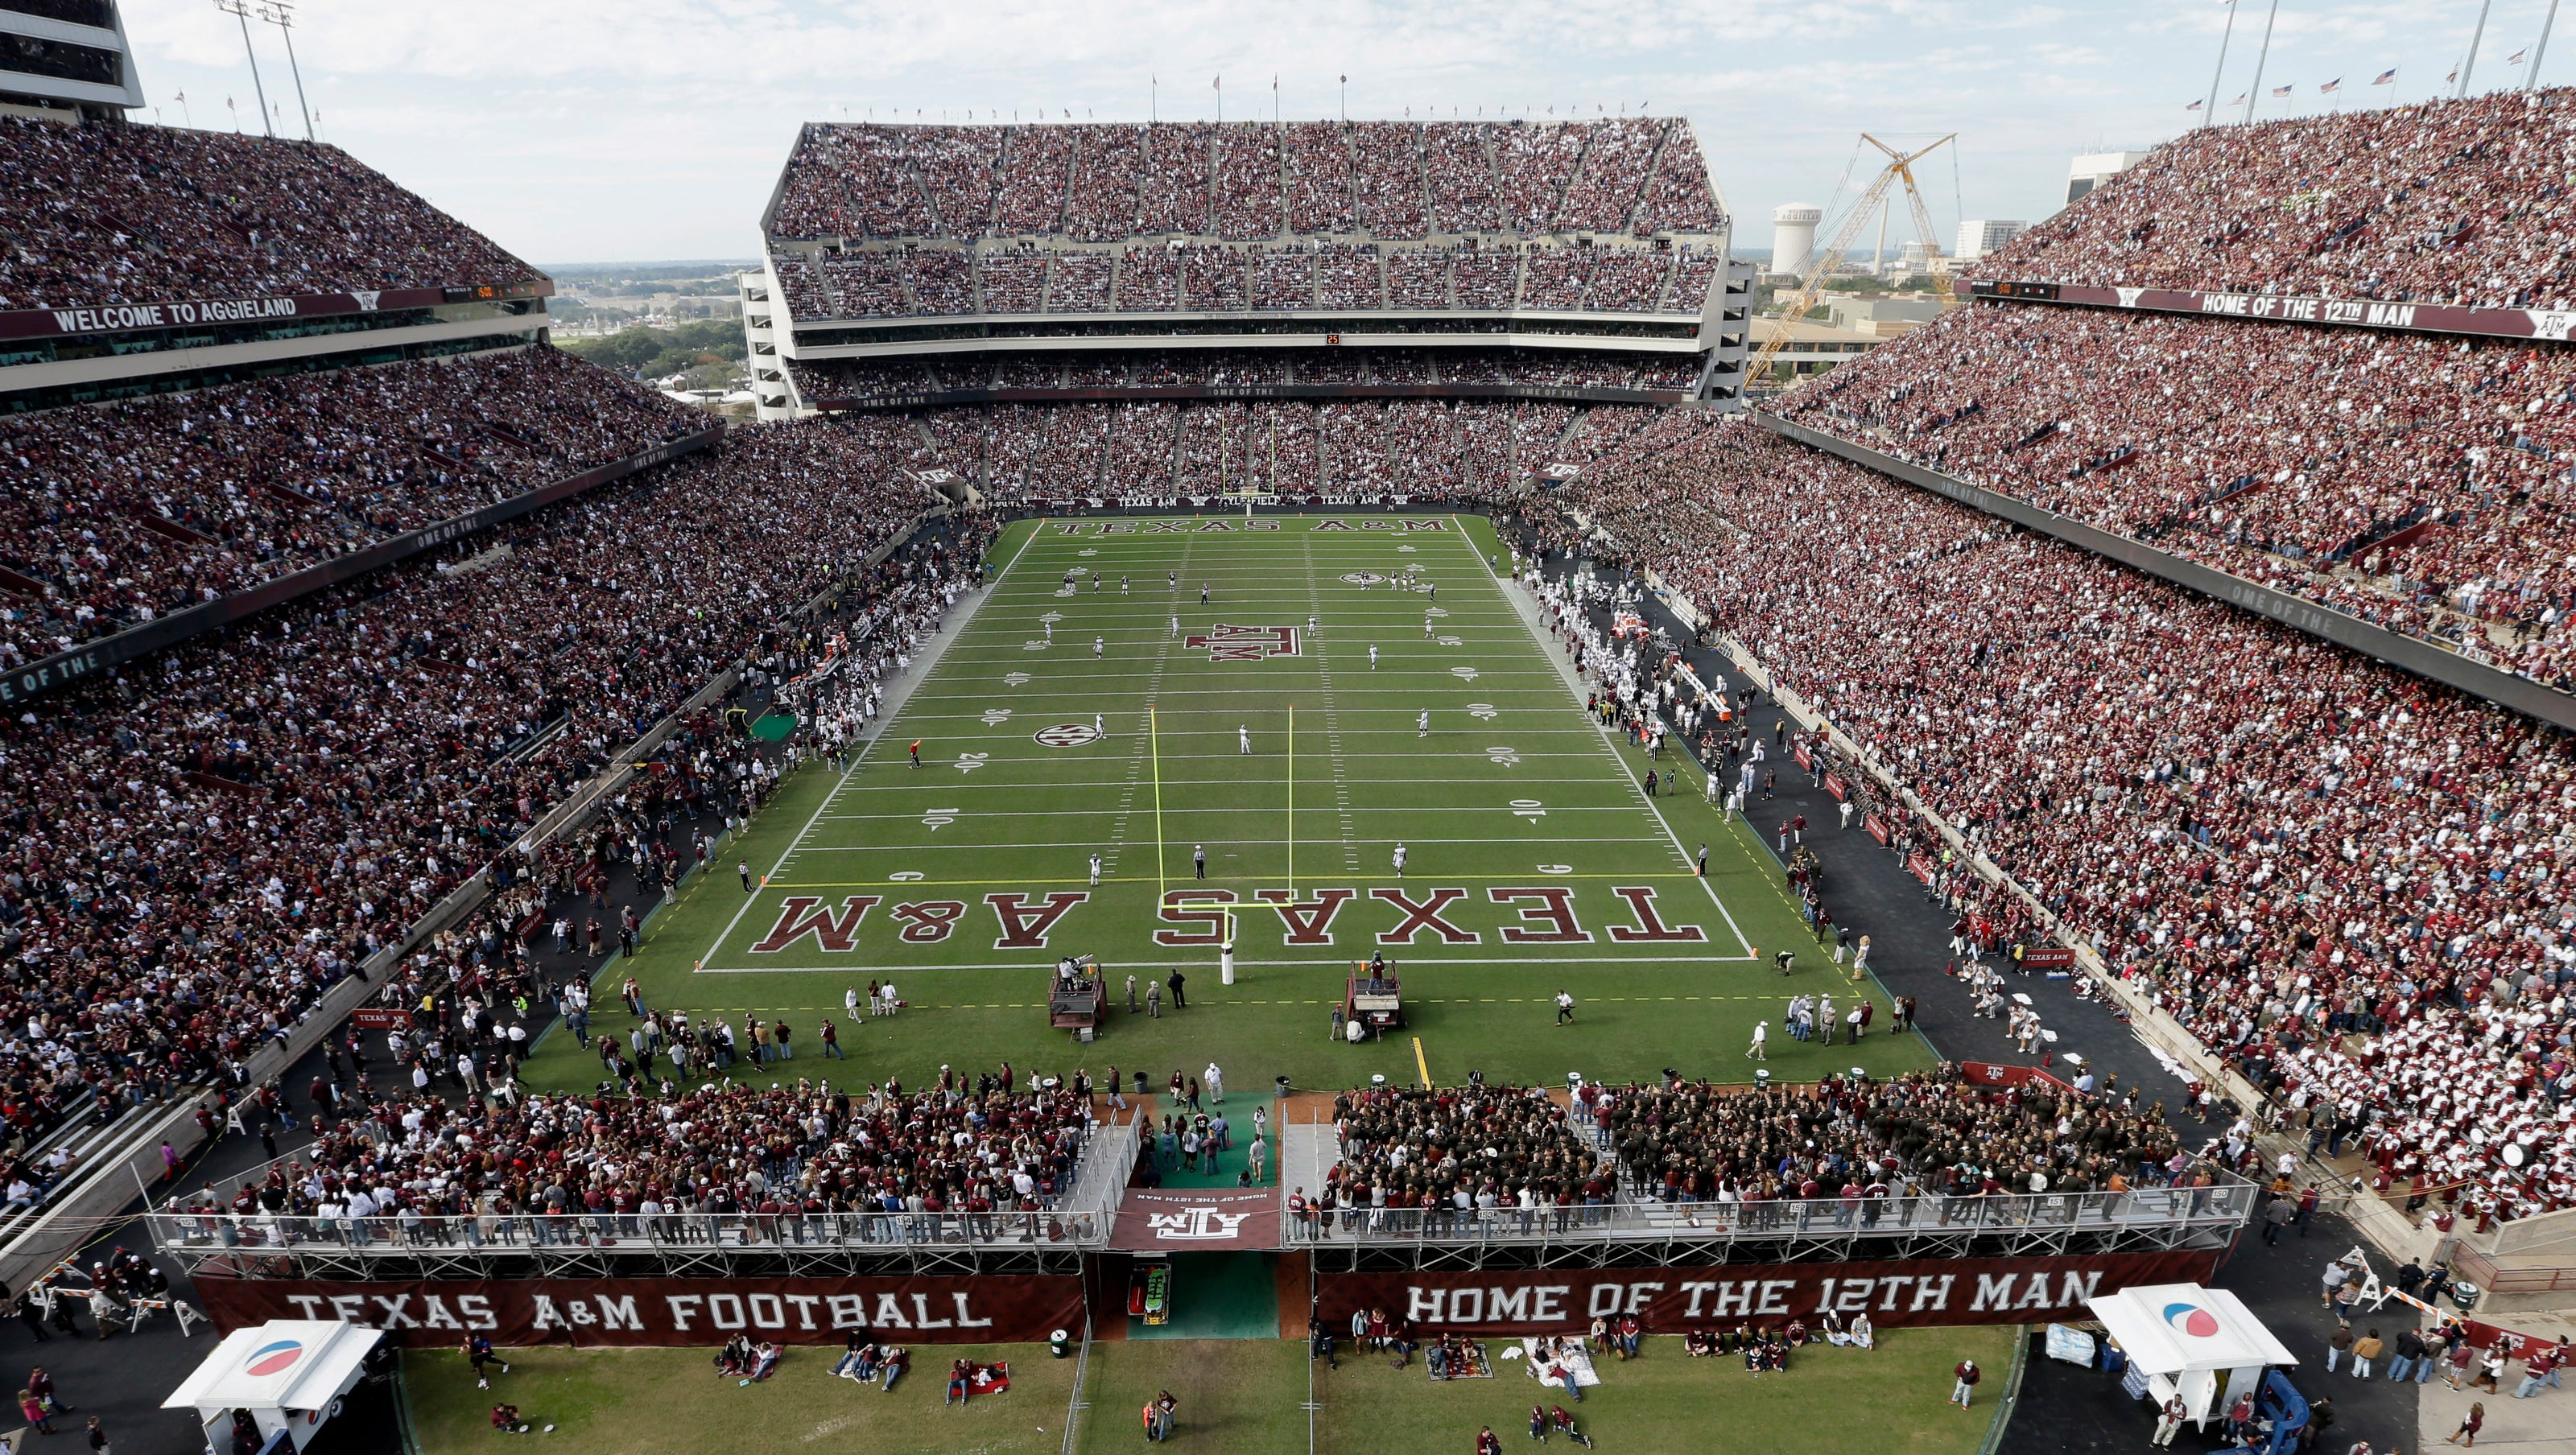 College Football Non Conference Games Worth 175 Million In Guarantees